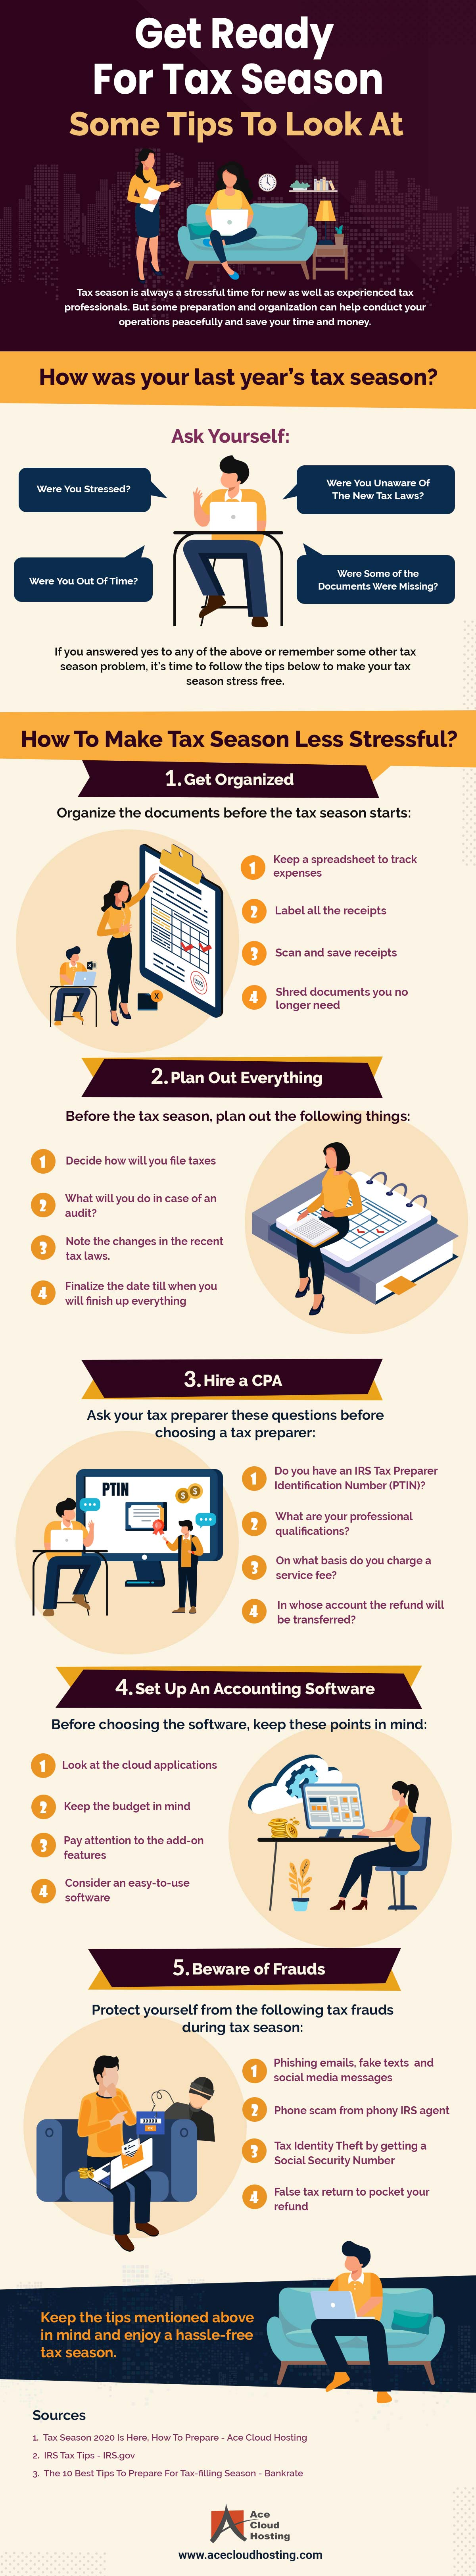 get-ready-for-tax-season-2018-infographic